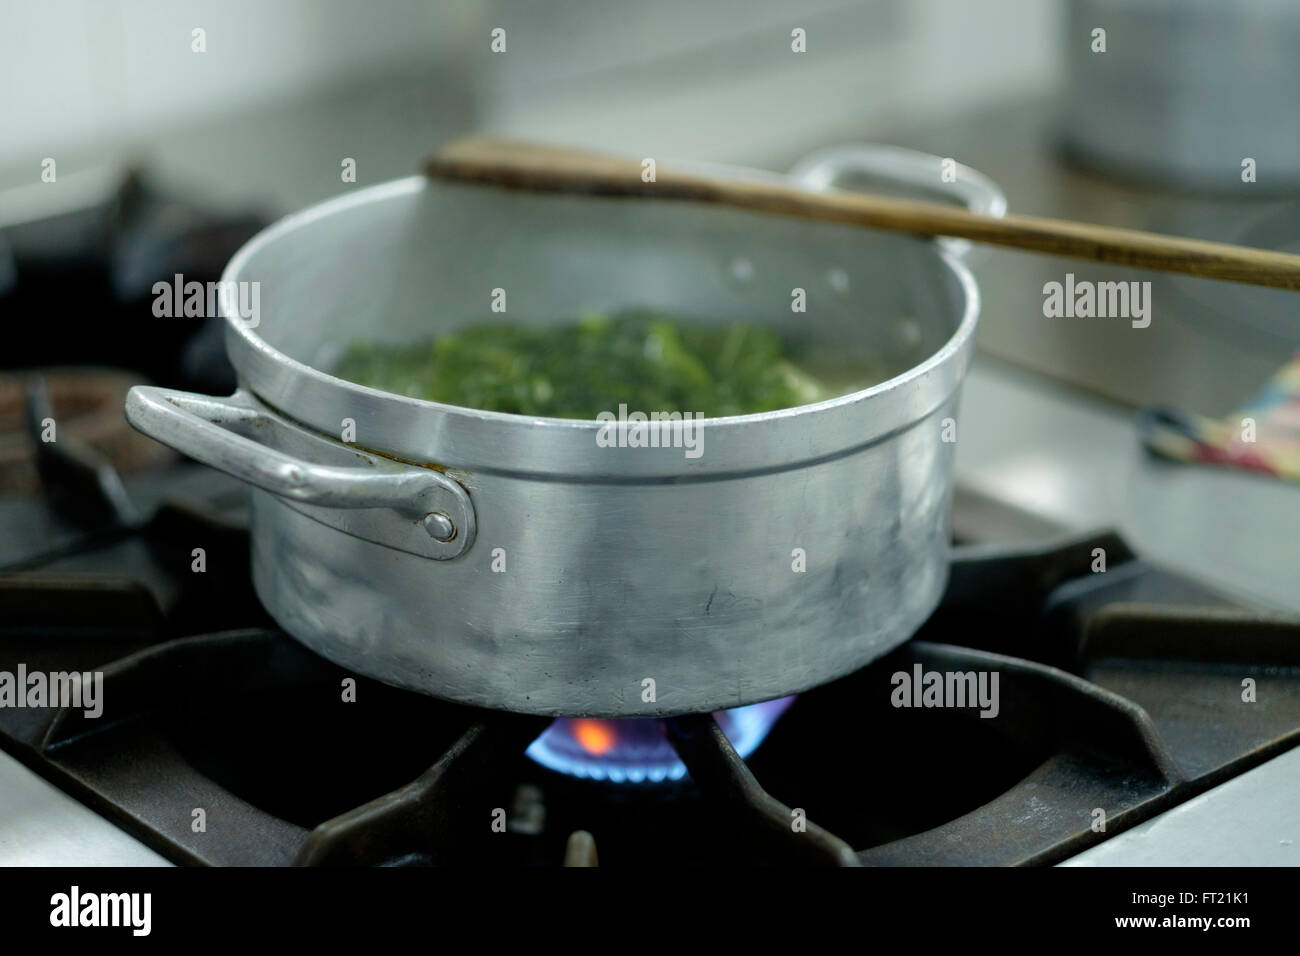 Vegetables being cooked in a metal pan on a stove - Stock Image